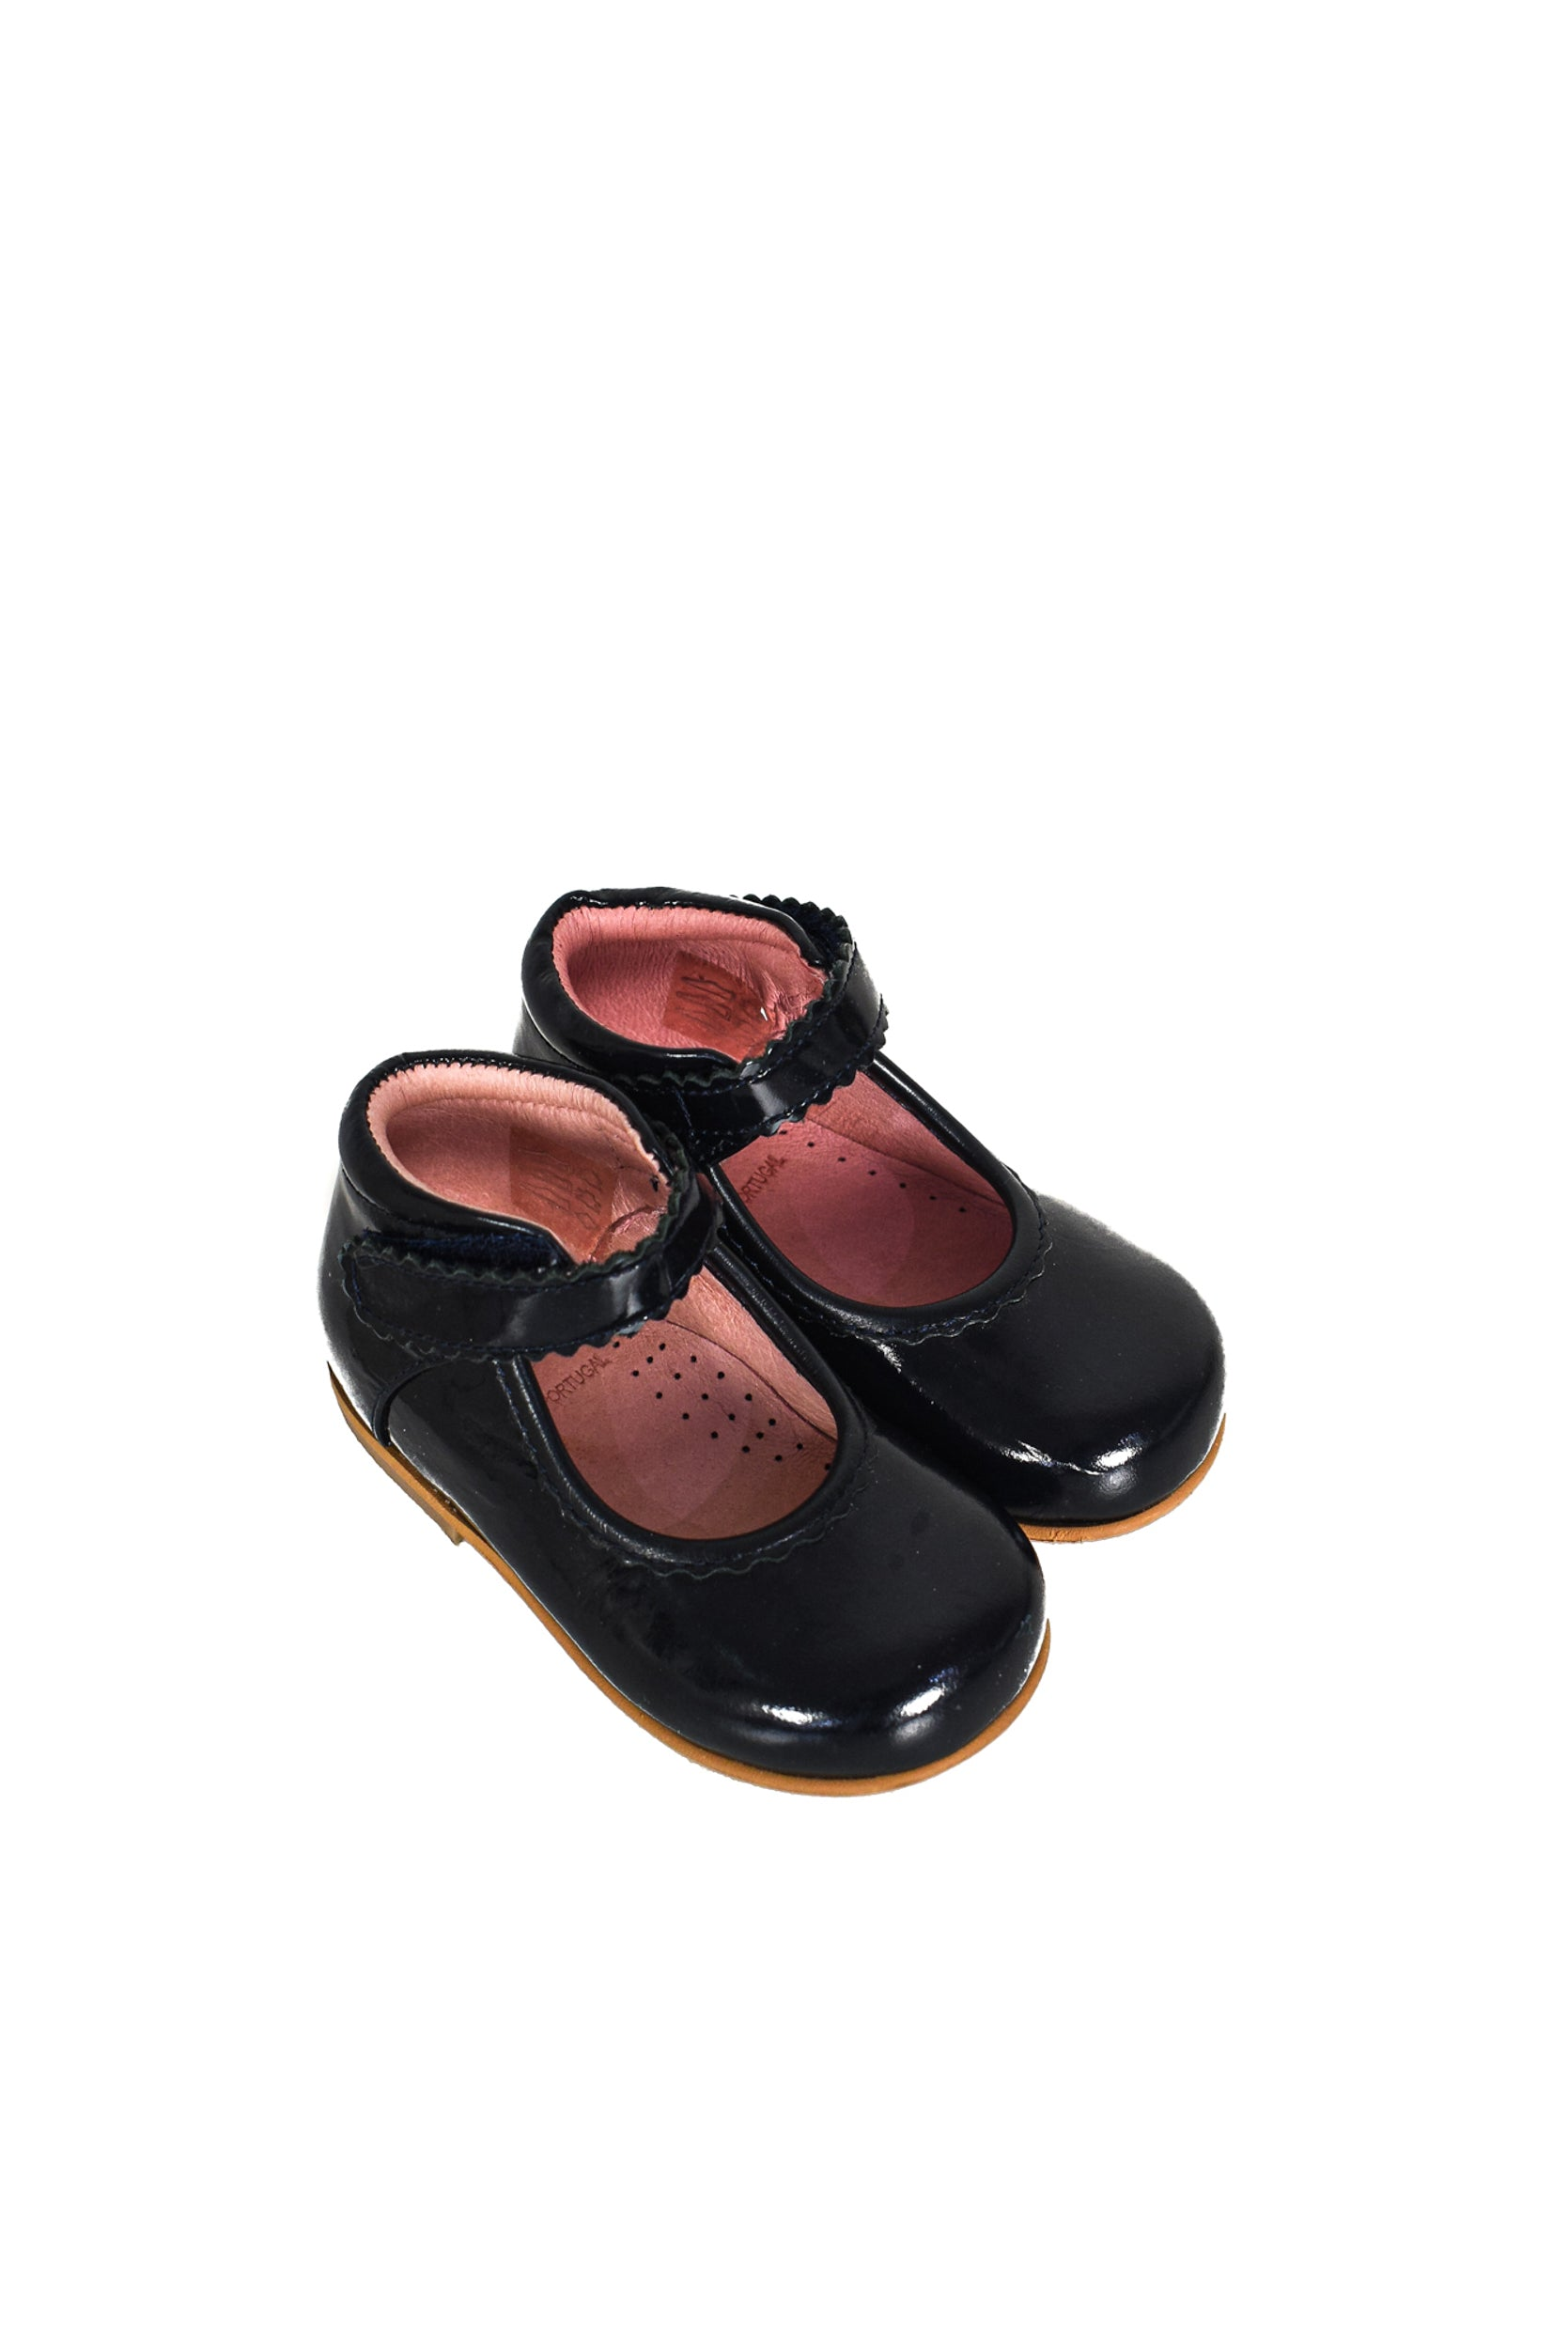 Jacadi Mary Janes 12-18M (EU 21) at Retykle